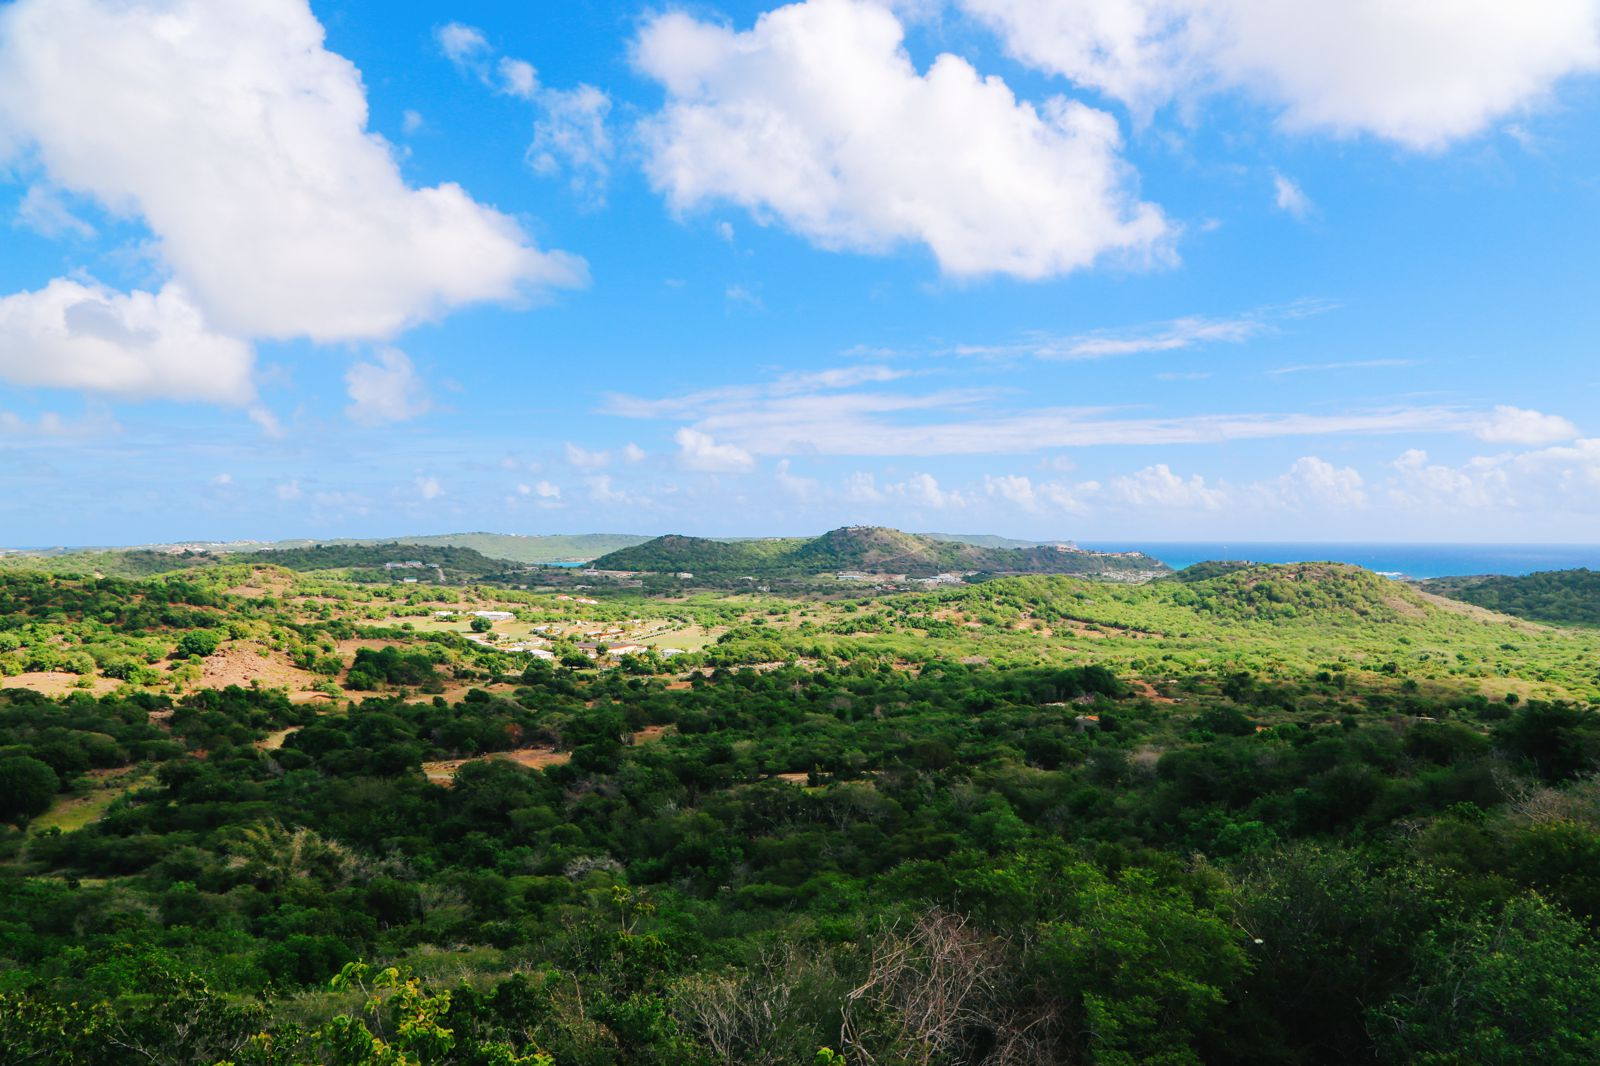 Exploring The Caribbean Island Of Antigua By Land - Part 1 (41)